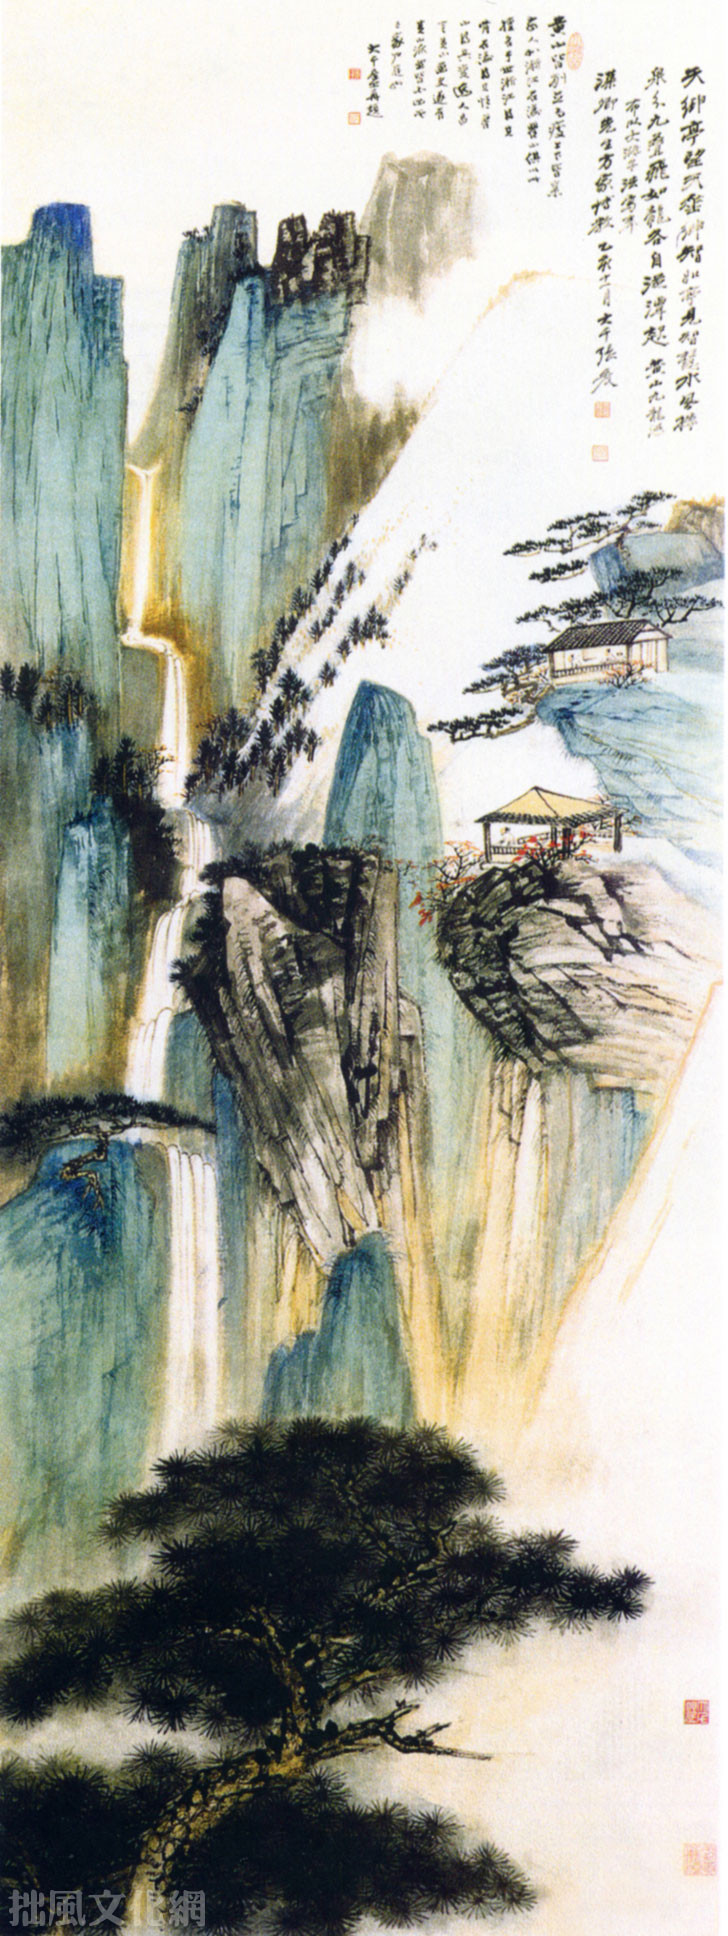 Chinese Landscape Paintings  Bonsai Style Chinese Penjing and Landscape Paintings